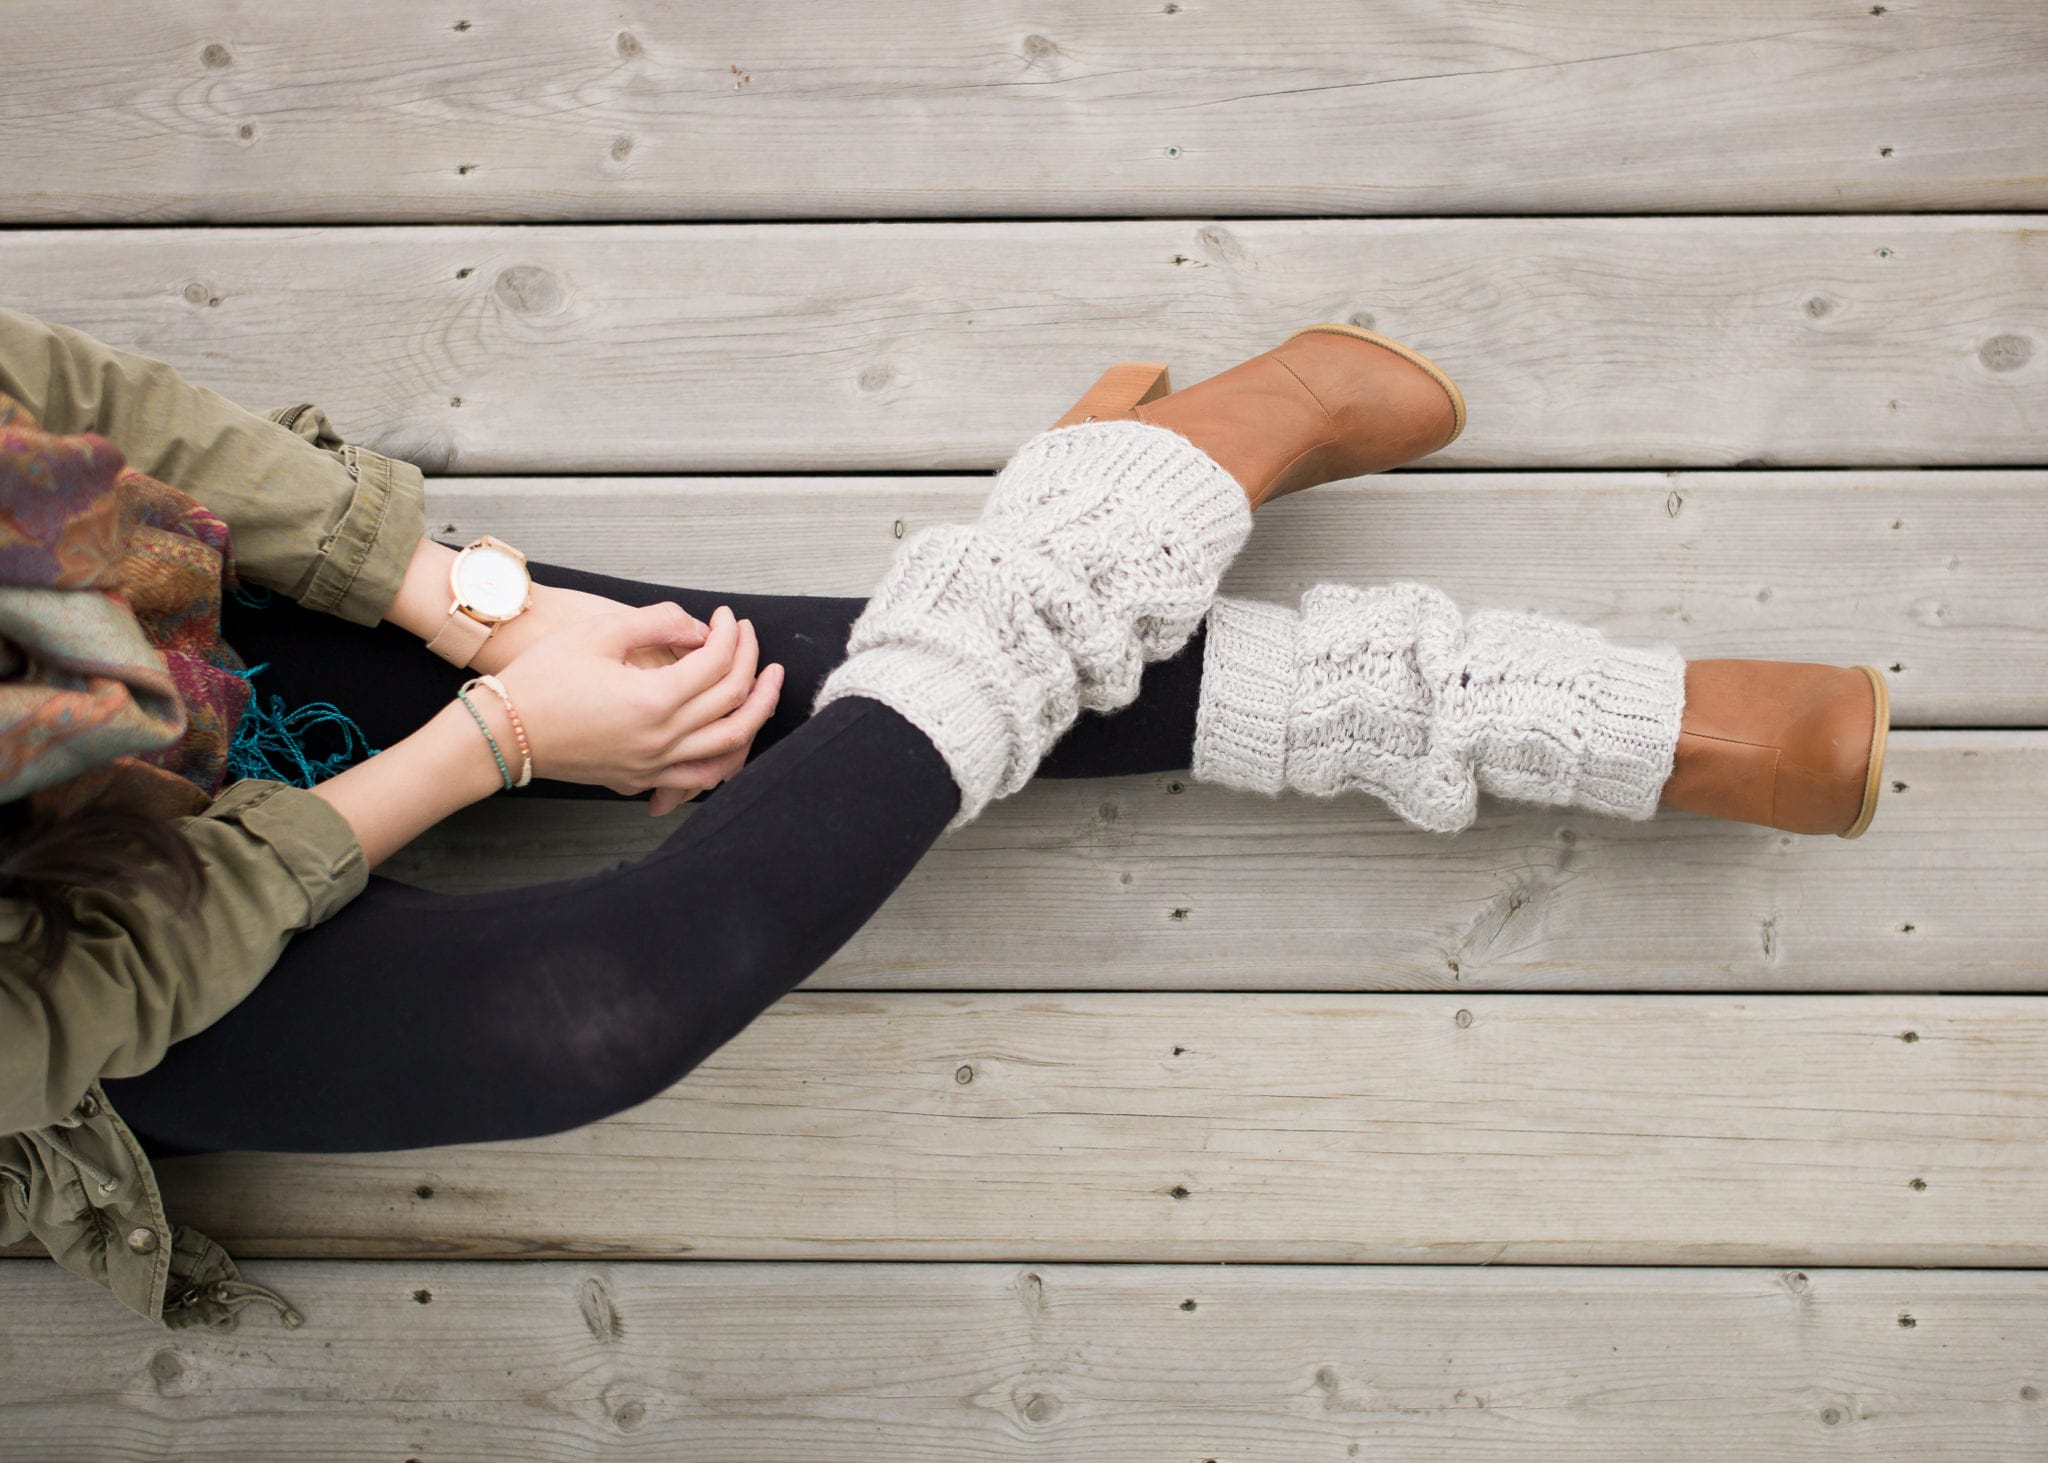 Cabled Legwarmersboot Cuffs All About Ami